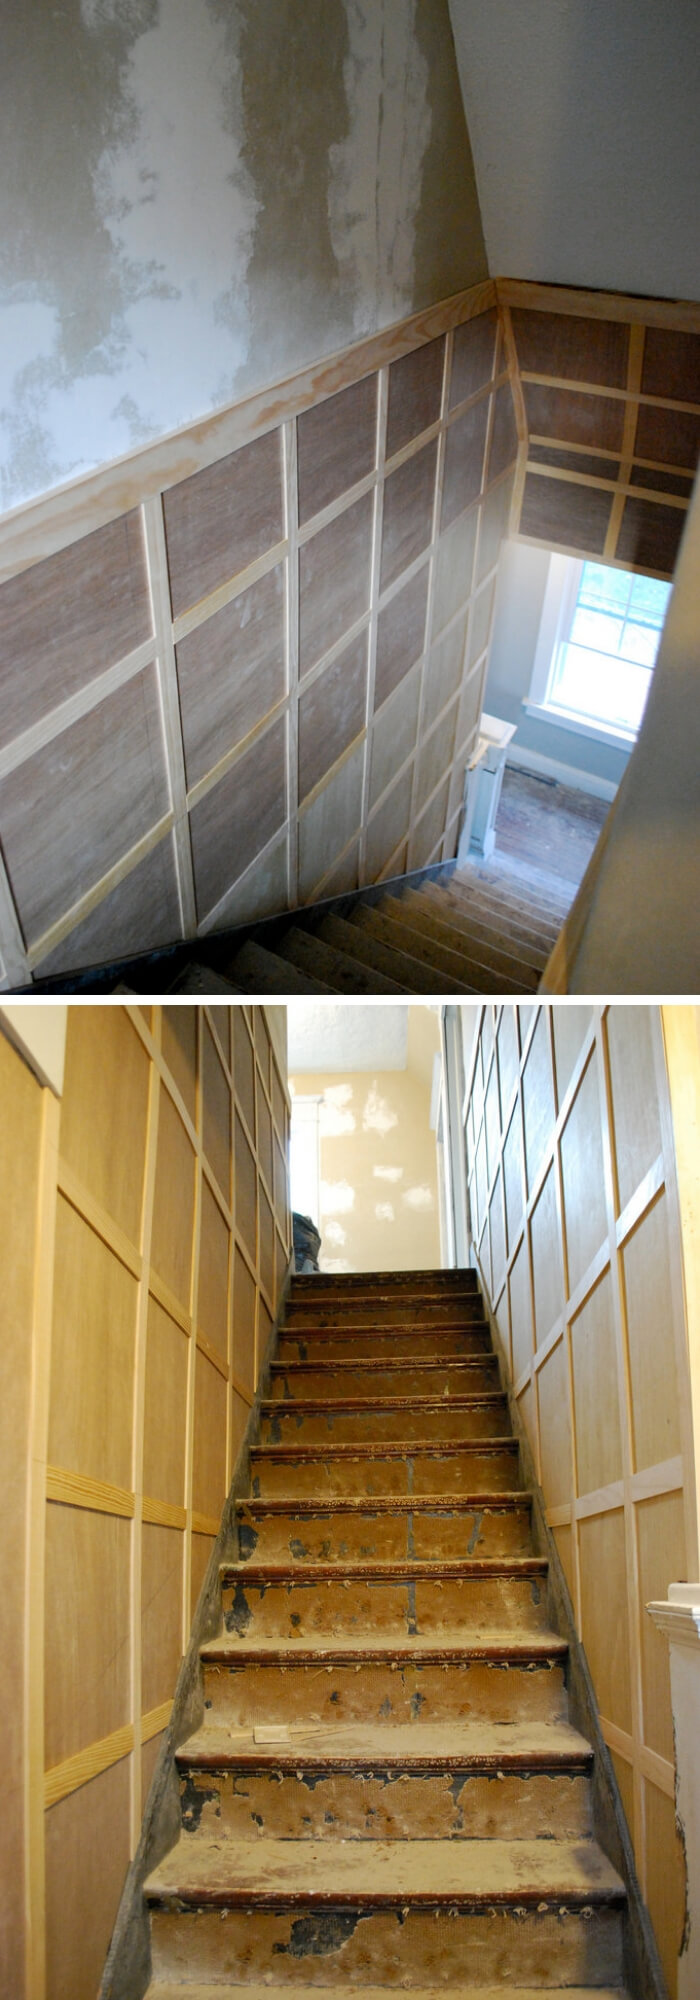 Board and batten stairwell | Amazing Wainscoting Ideas for Your New Home